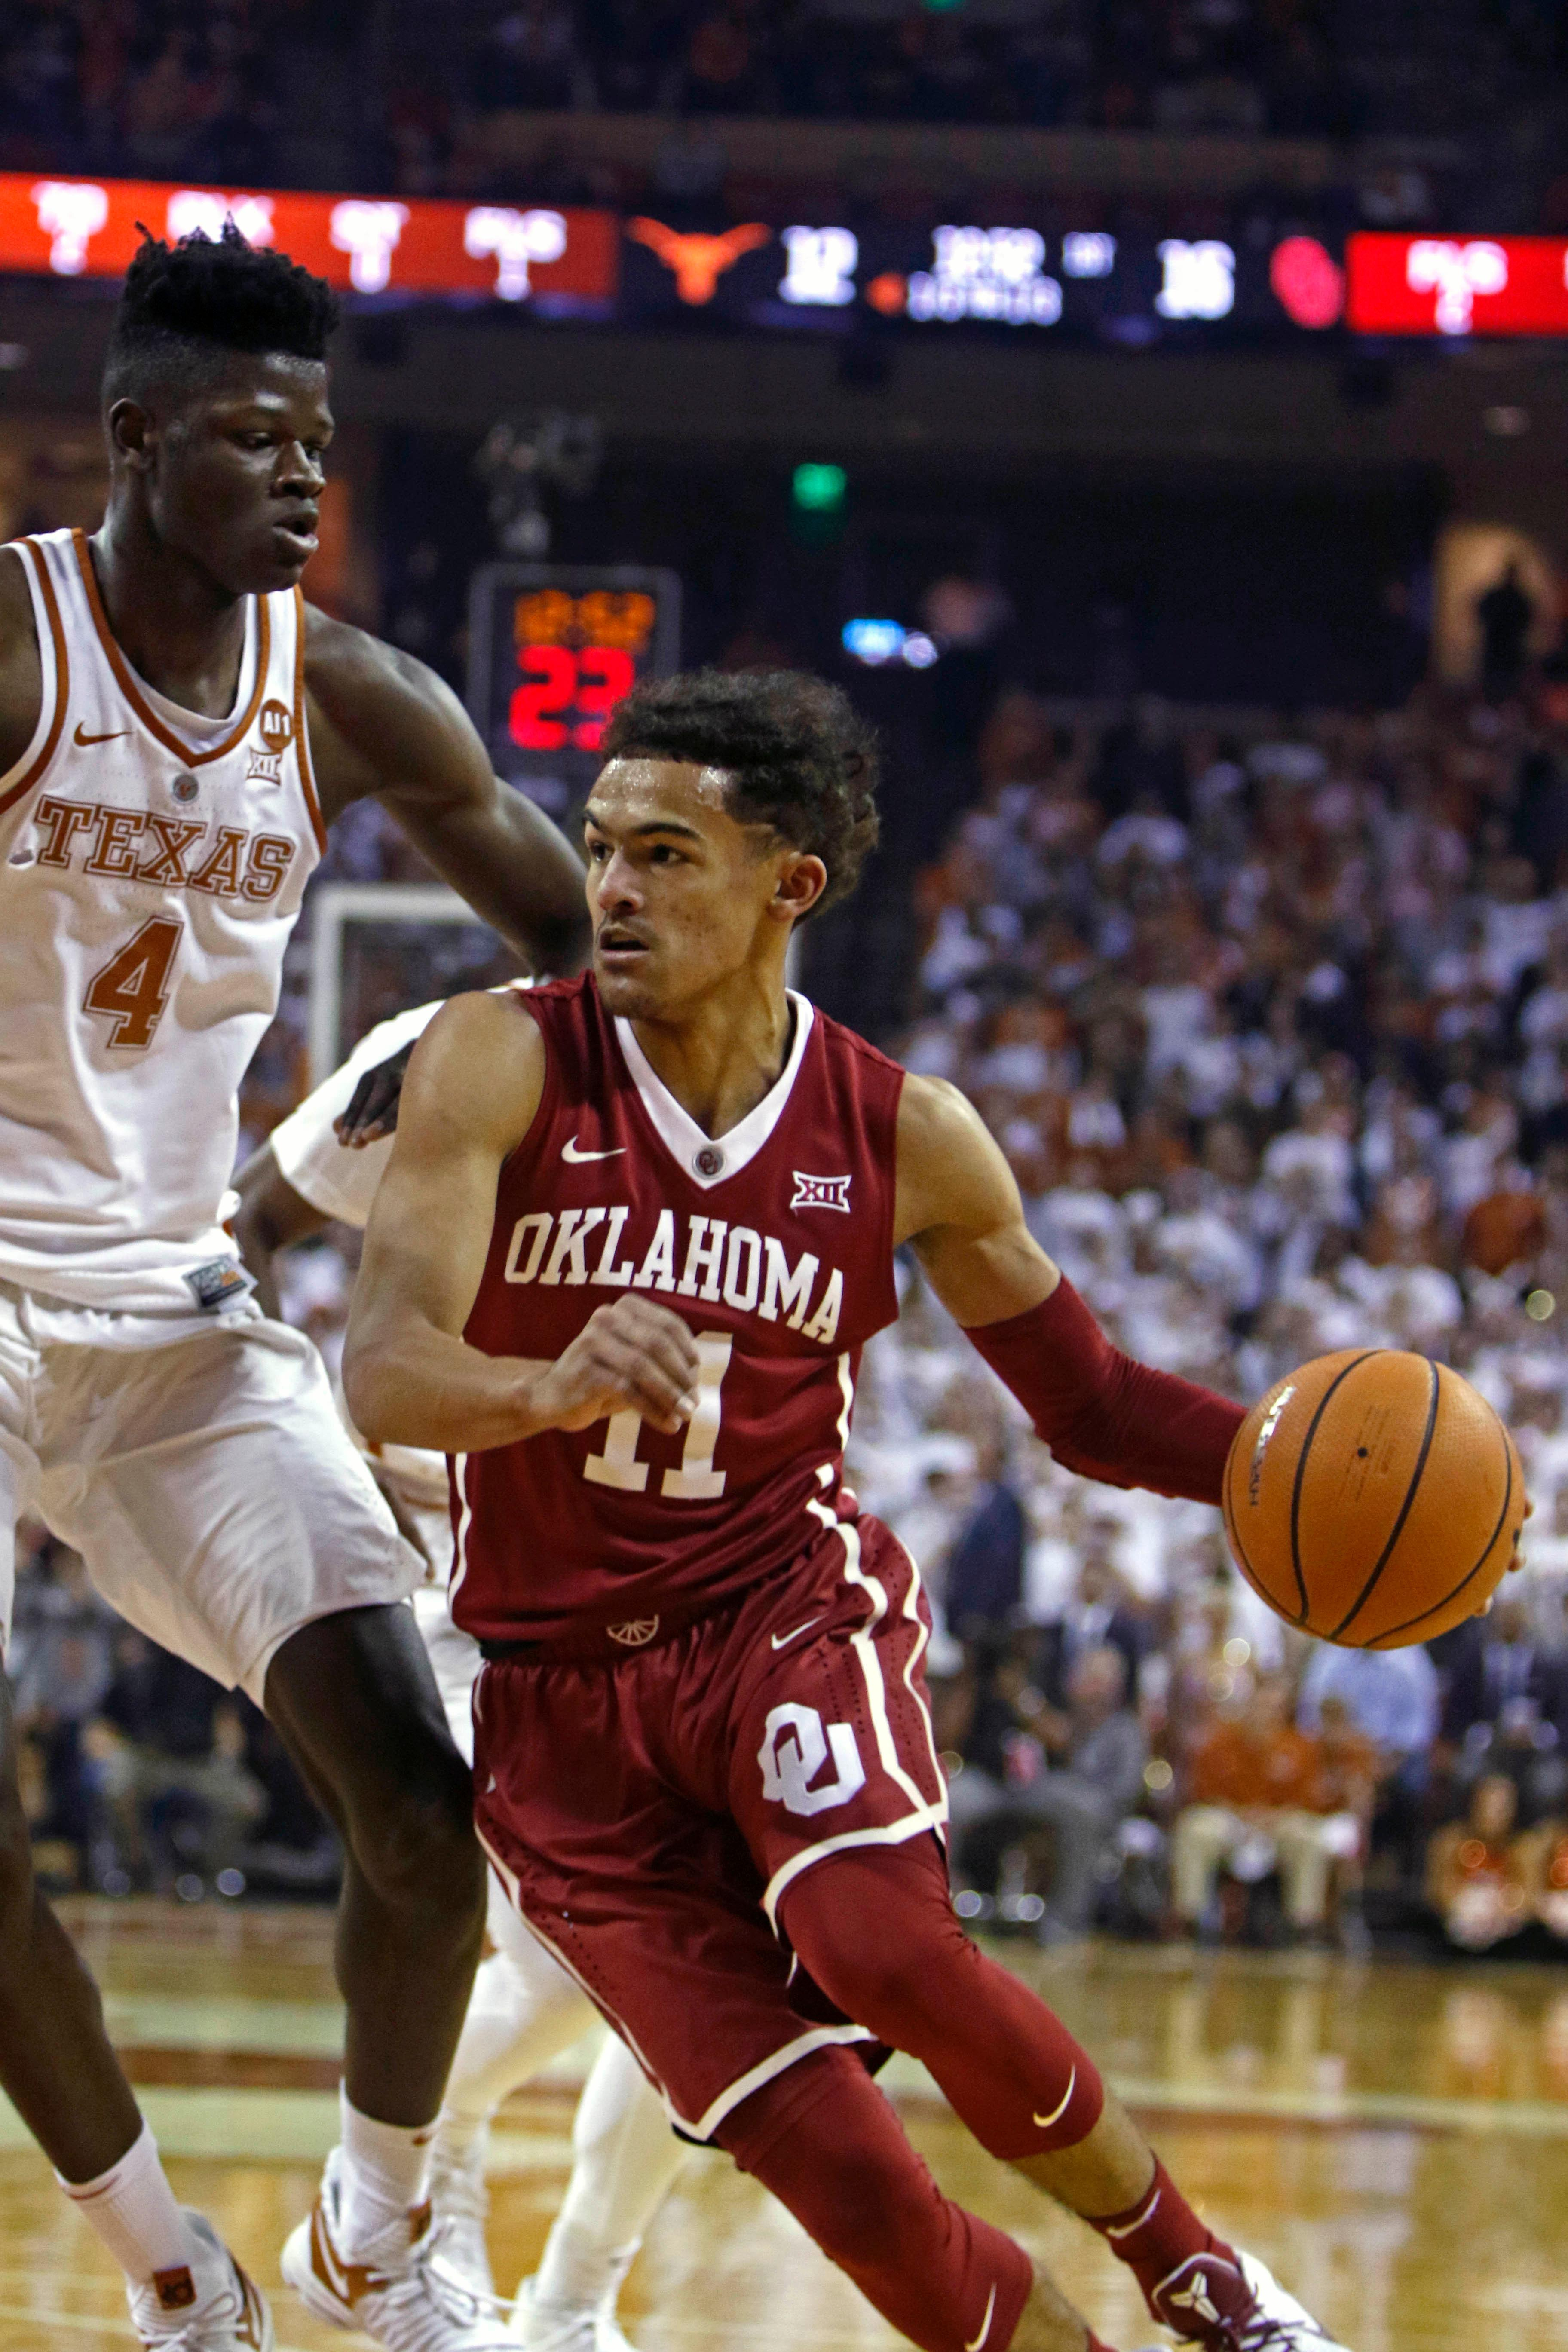 Oklahoma guard Trae Young (11) drives the ball against Texas center Mohamed Bamba (4) during the first half of an NCAA college basketball game, Saturday, Feb. 3, 2018, in Austin, Texas. (AP Photo/Michael Thomas)